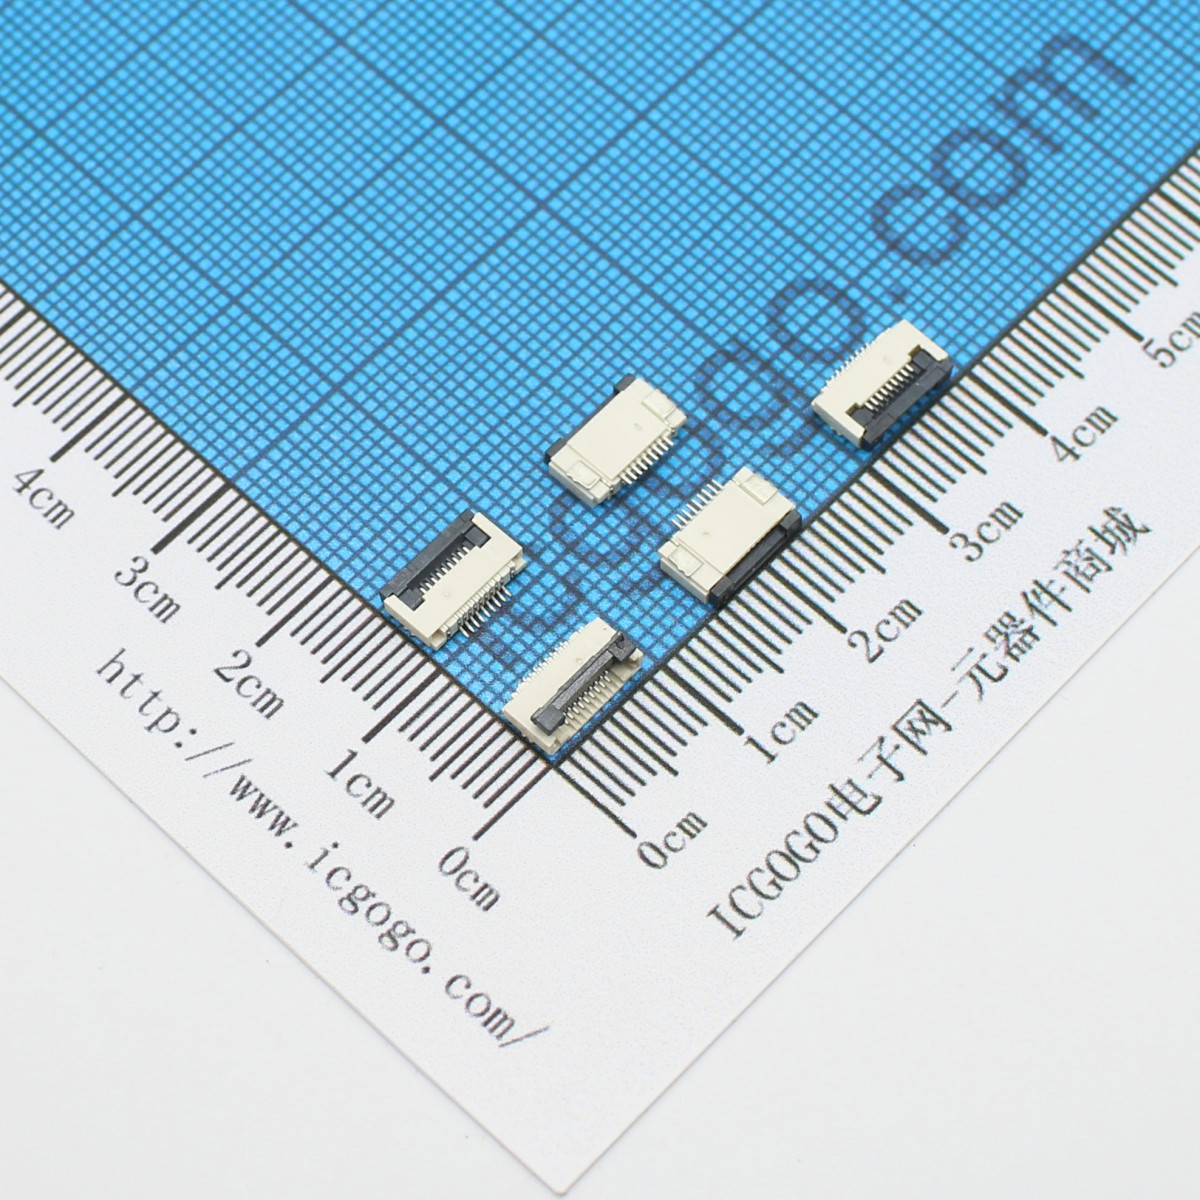 5e-9p 描    述: 柔性电路板 flexible printed circuit 简称fpc 是以